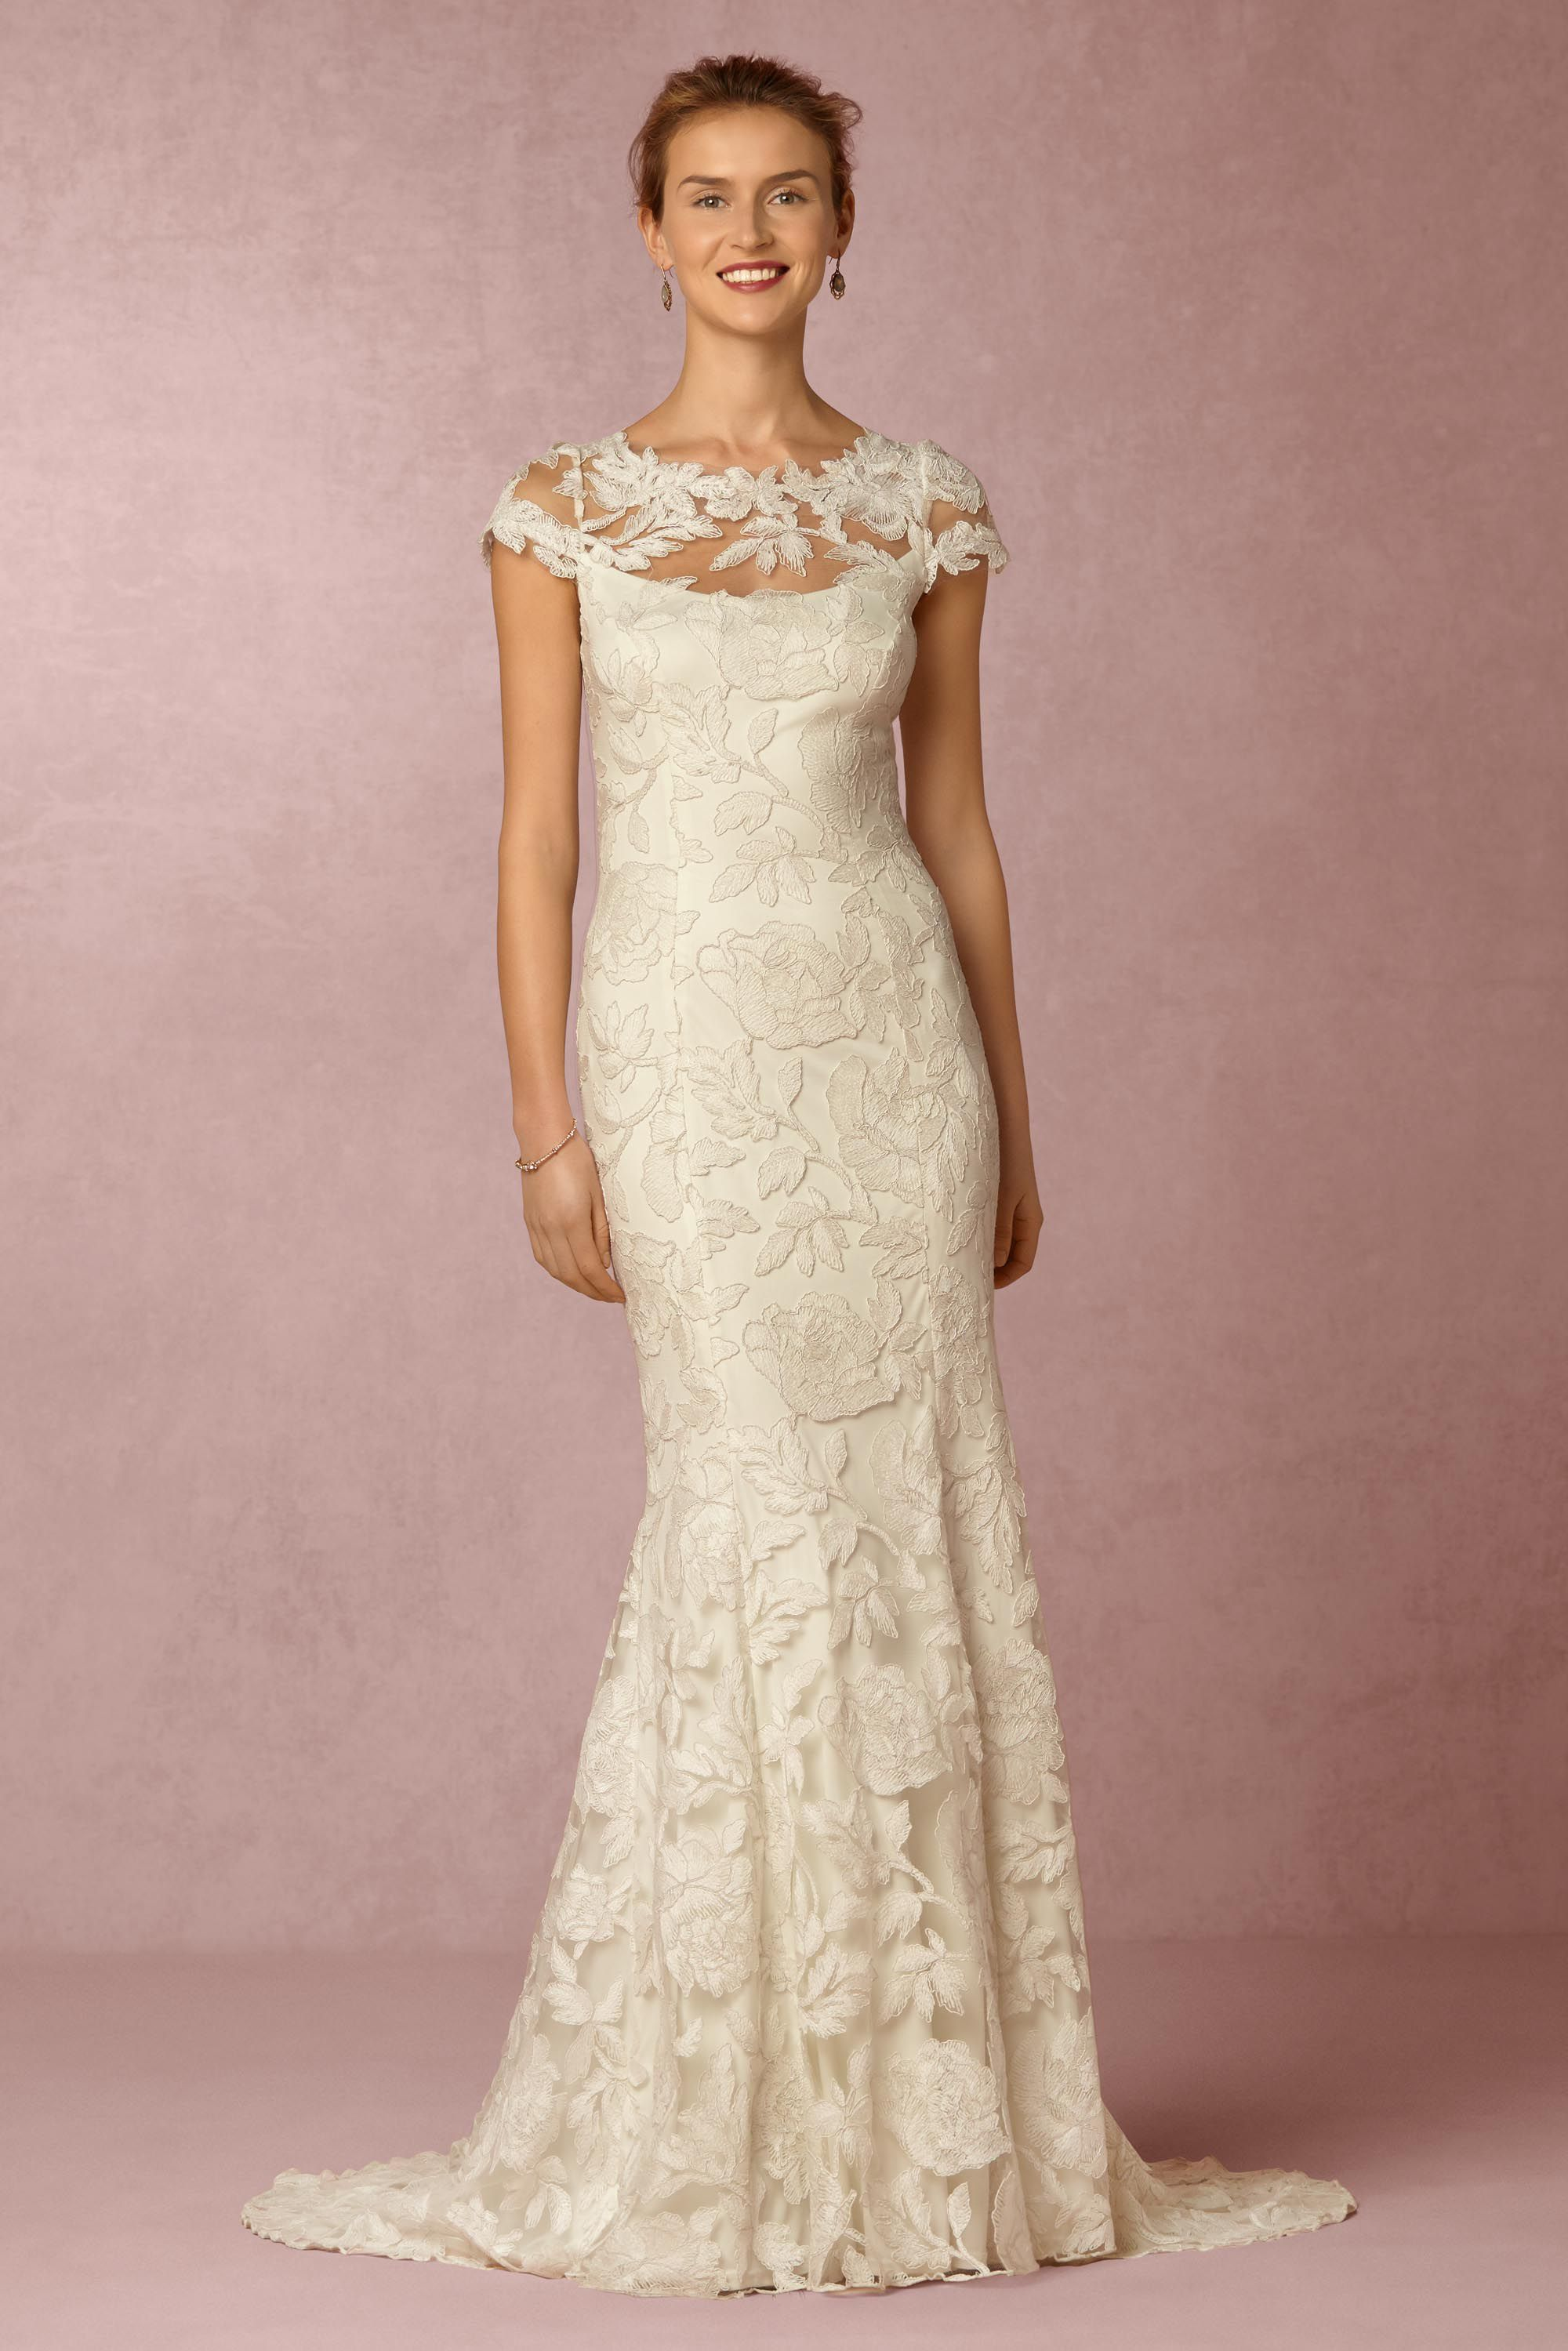 Wedding Anthropology Wedding Dresses elinor gown in sale wedding dresses bhldn tadashi shoji ivory bhldn